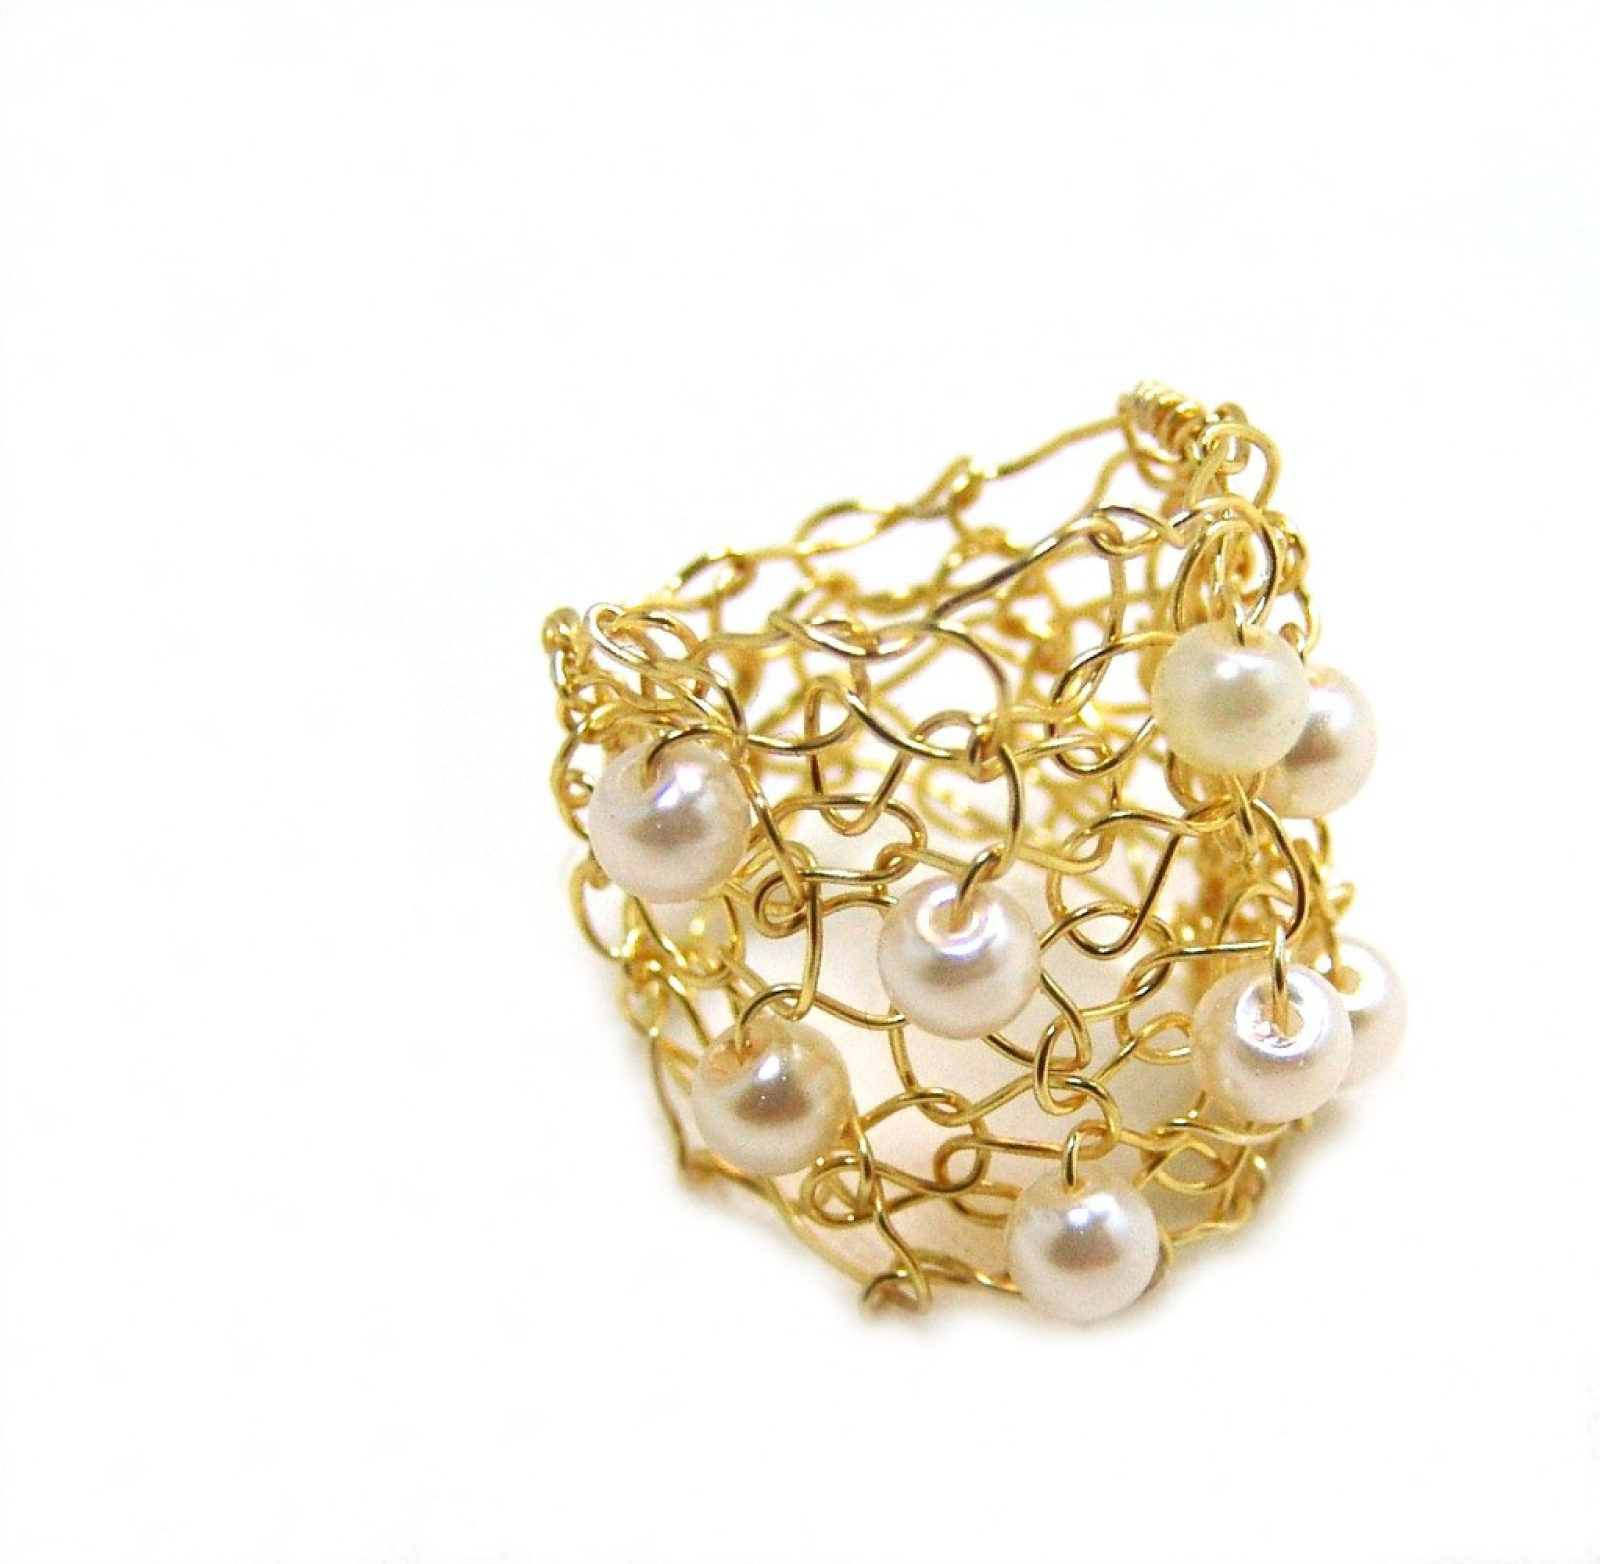 Big Gold Ring Ivory Cream Pearl Cocktail Ring Wire Knit Jewelry